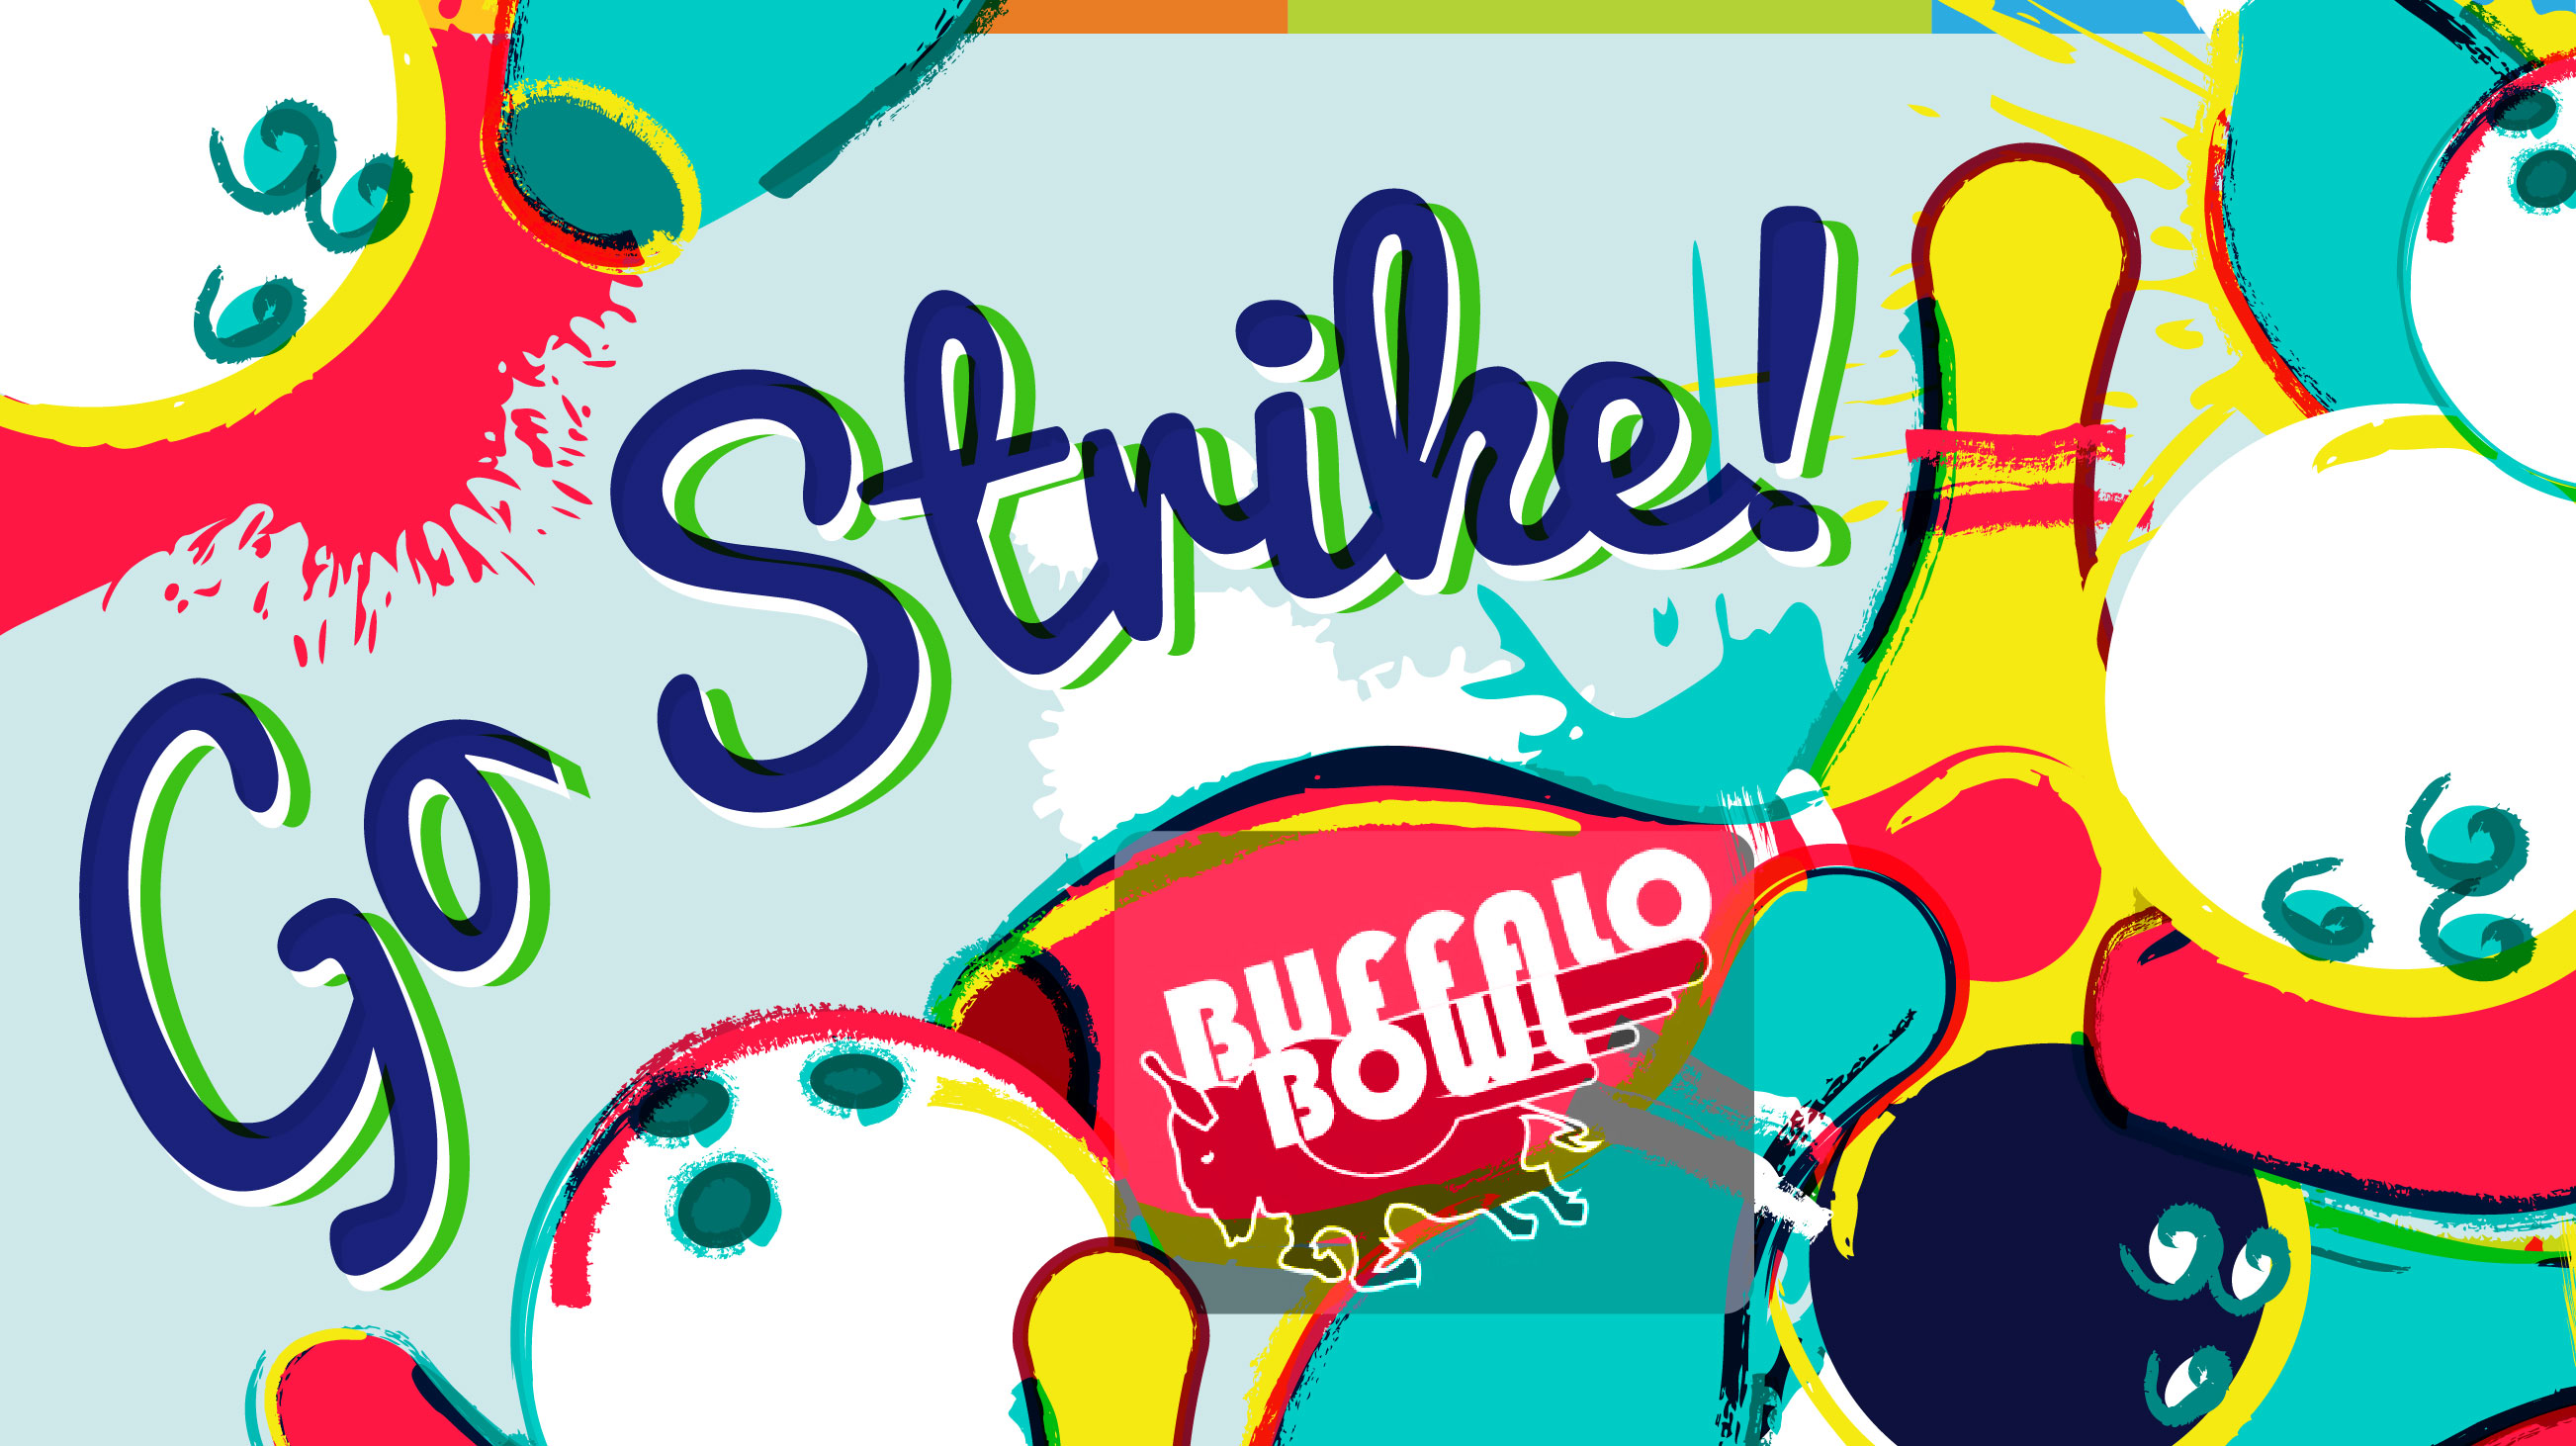 Go Strike! March Bowling Events